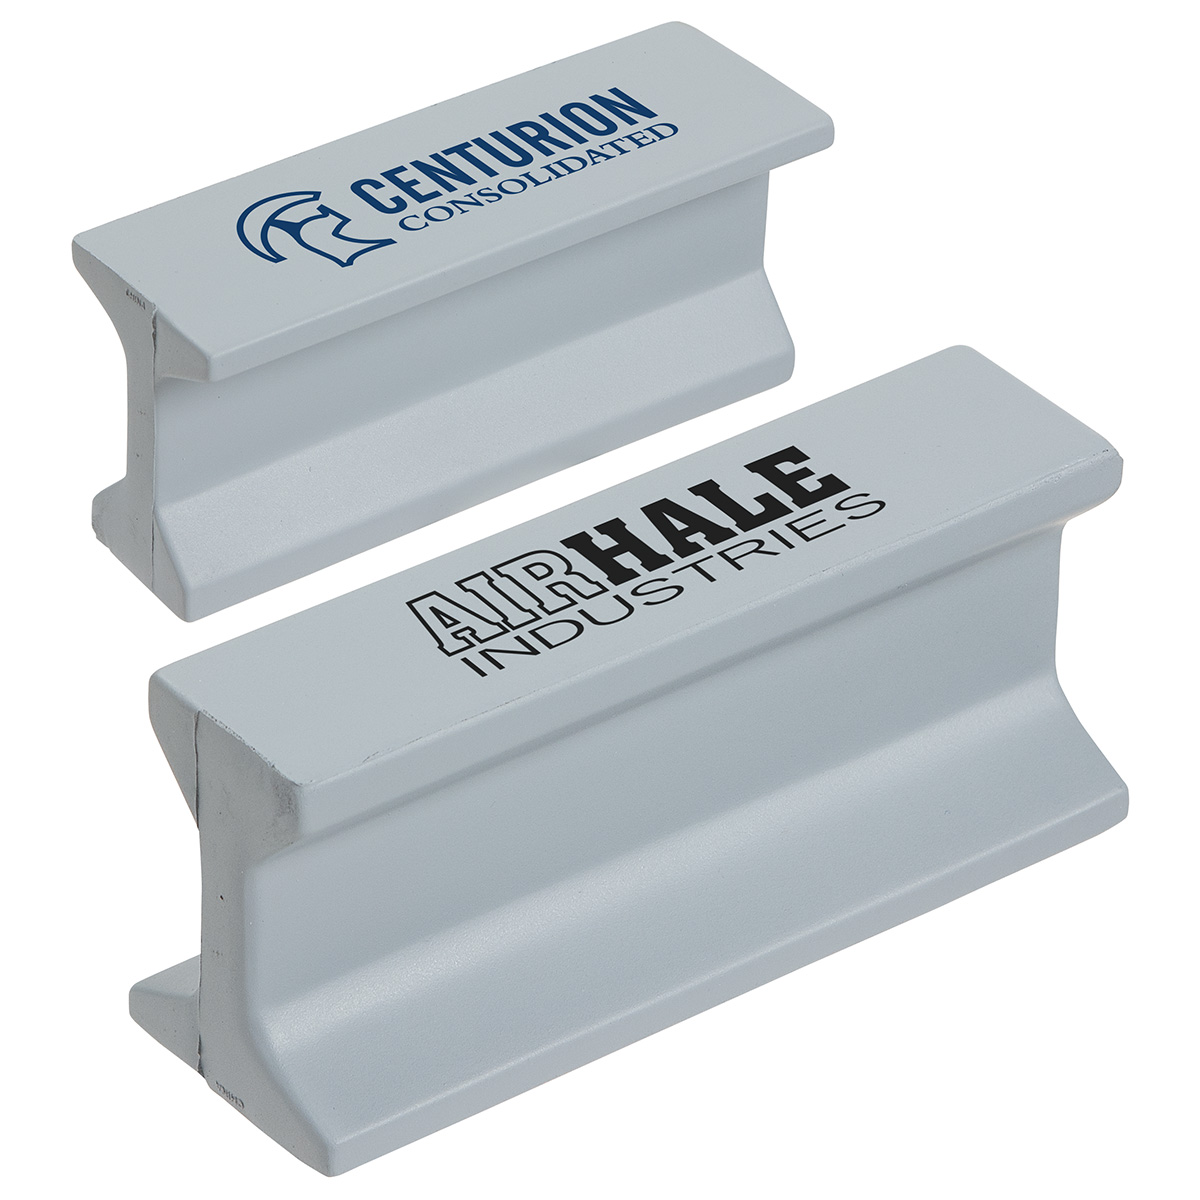 I-Beam Stress Reliever, LCN-BE08 - 1 Colour Imprint